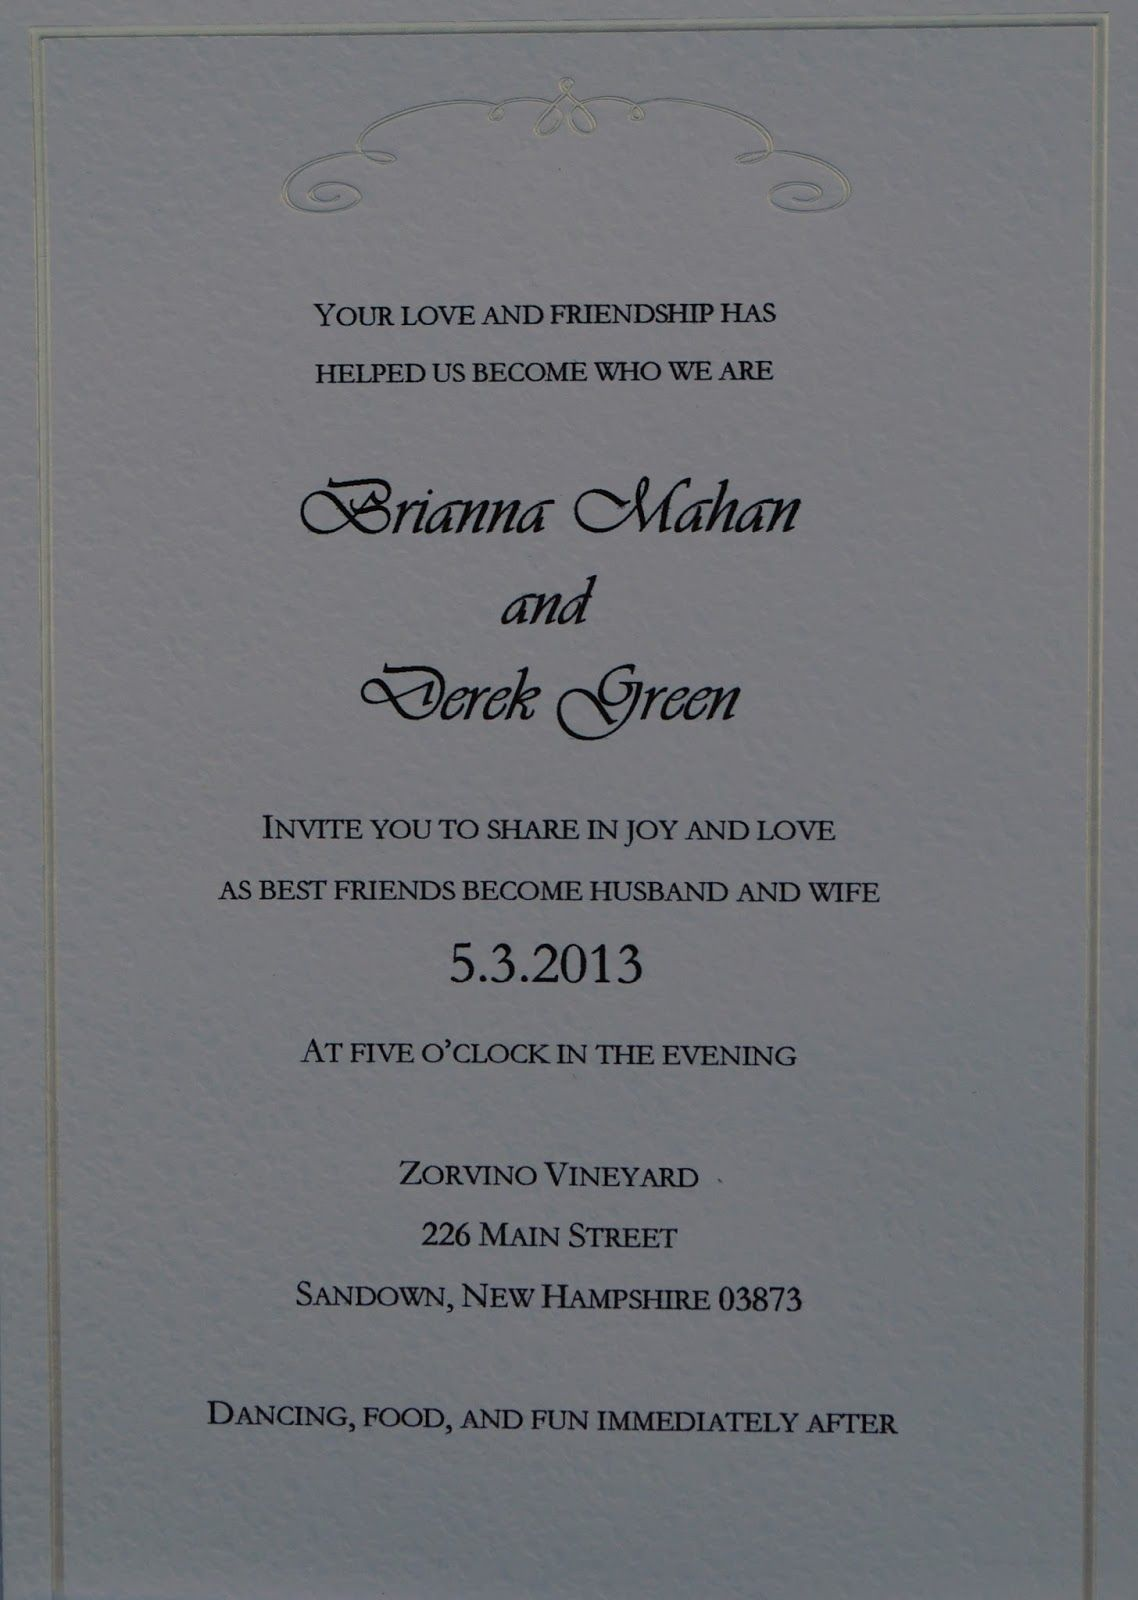 wedding party invitation message%0A  Wedding  invitation  wording  Alternative wording options